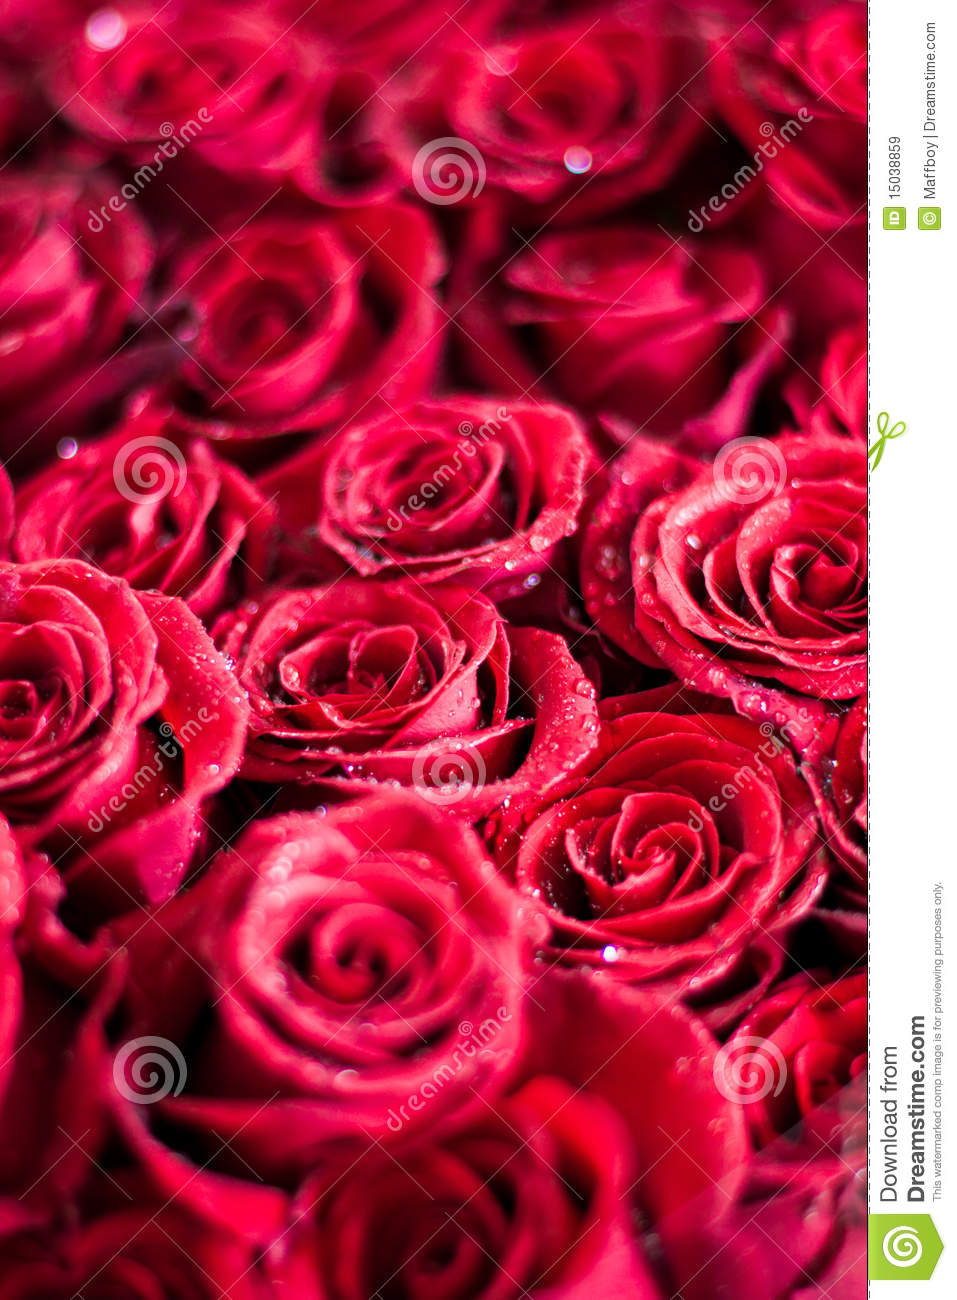 Free picture of bouquet of flowers banner stock Bouquet Of Roses Royalty Free Stock Images - Image: 15038859 banner stock